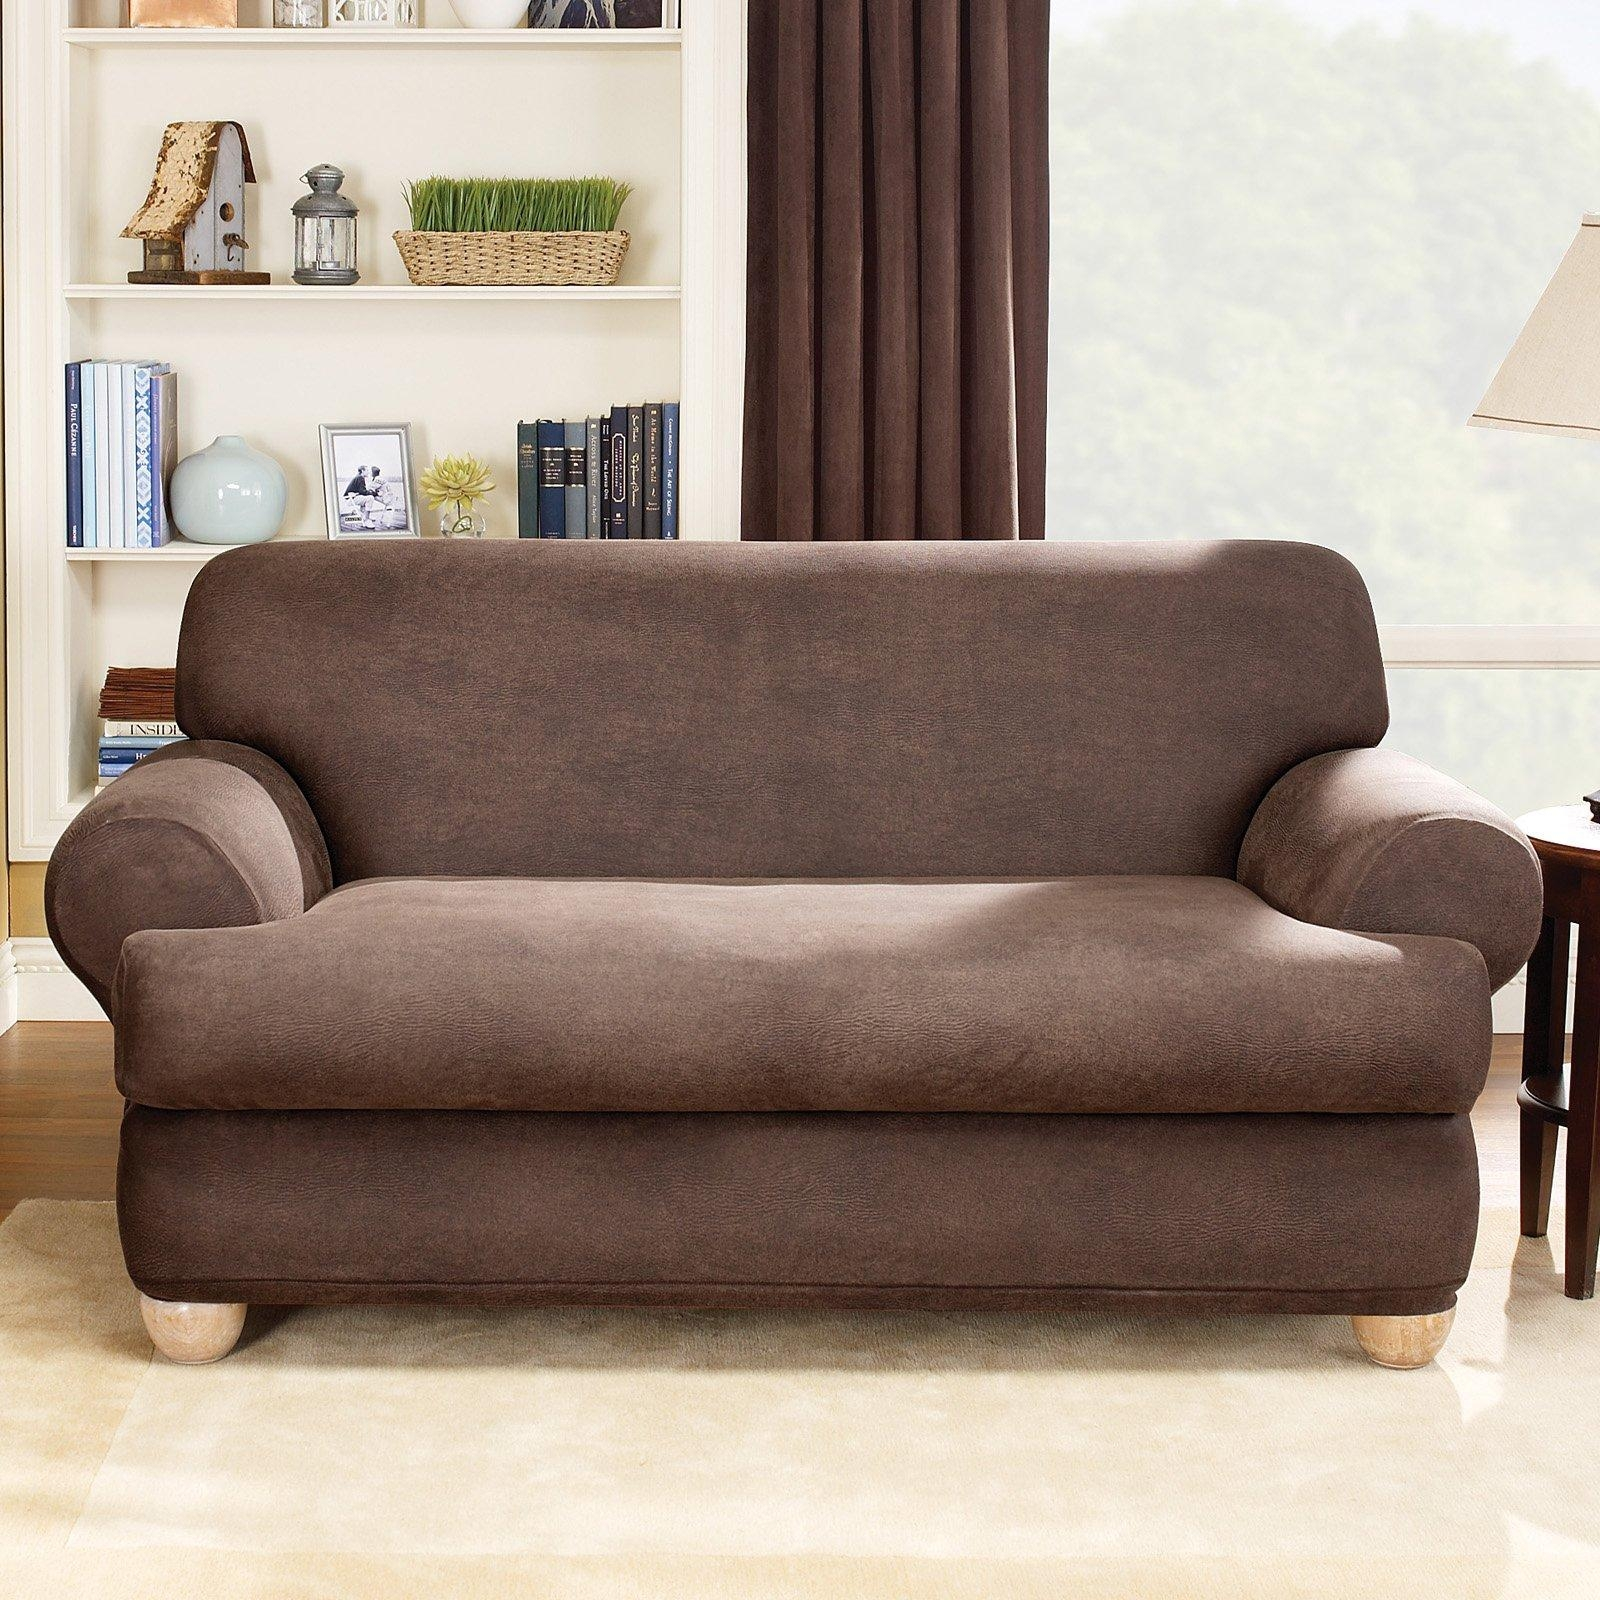 Sure Fit Lexington T Cushion One Piece Loveseat Slipcover | Hayneedle Throughout Loveseat Slipcovers T Cushion (Image 19 of 20)